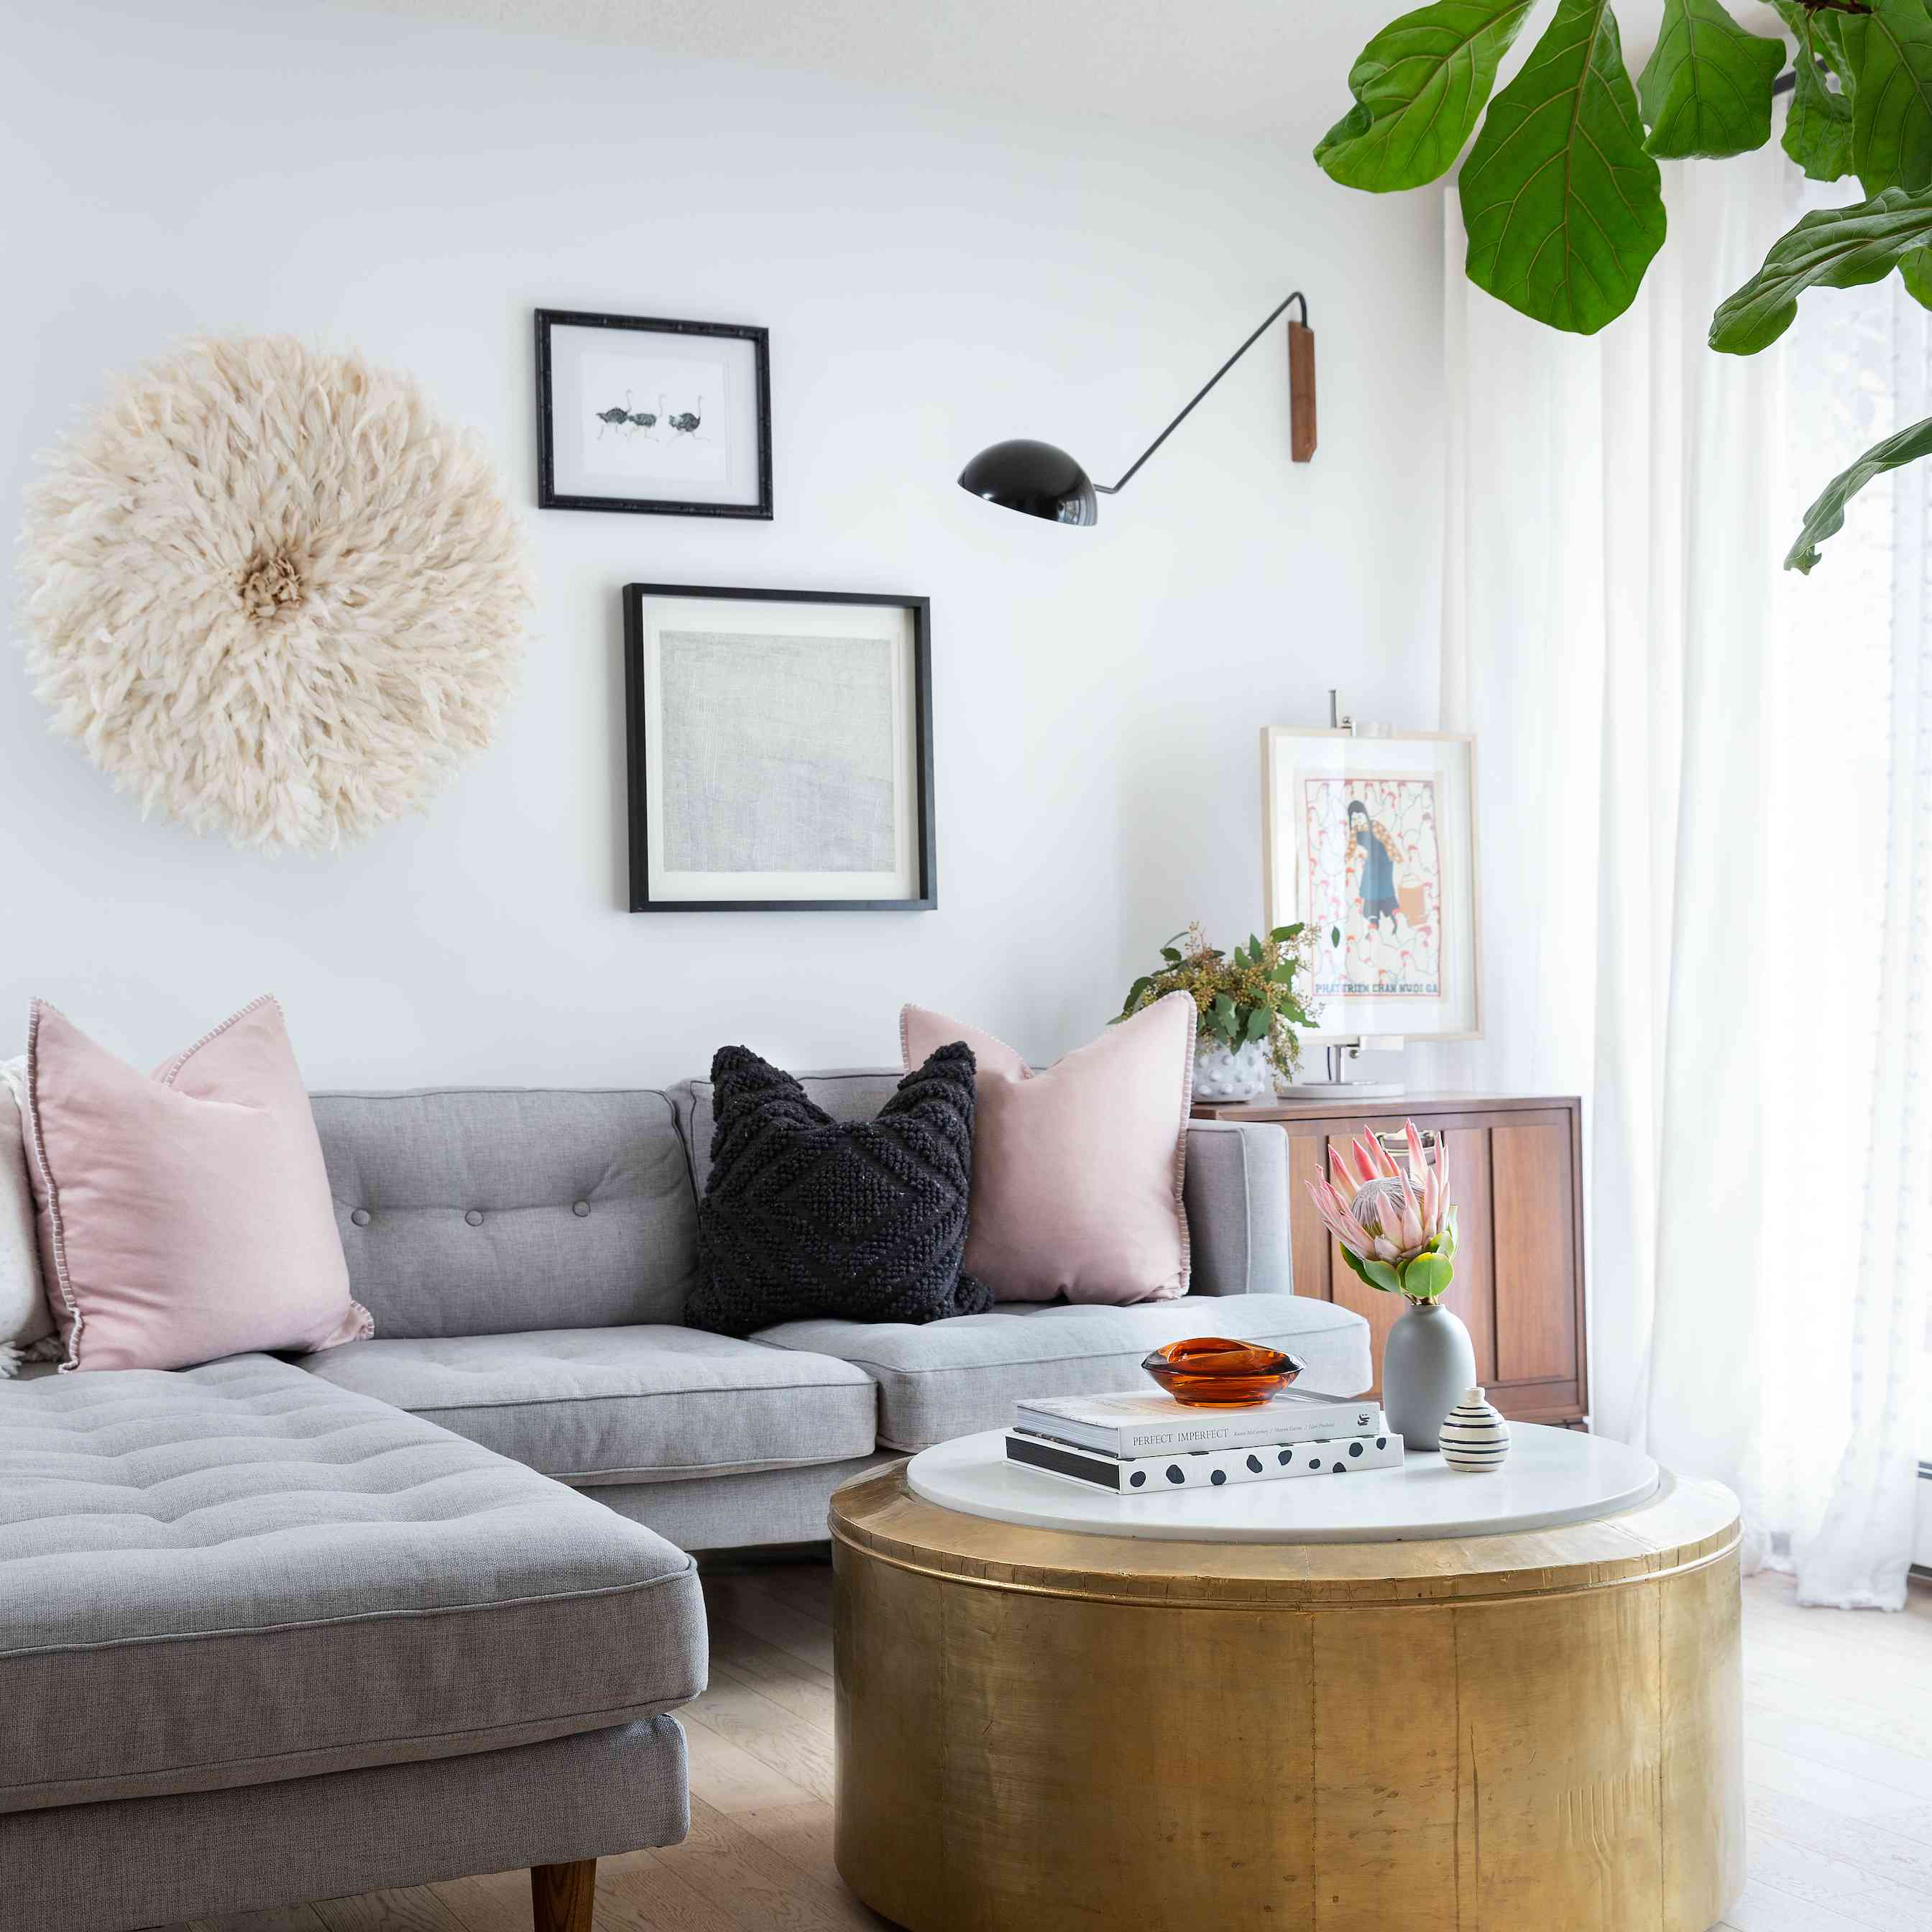 Rental living room with high-quality furniture